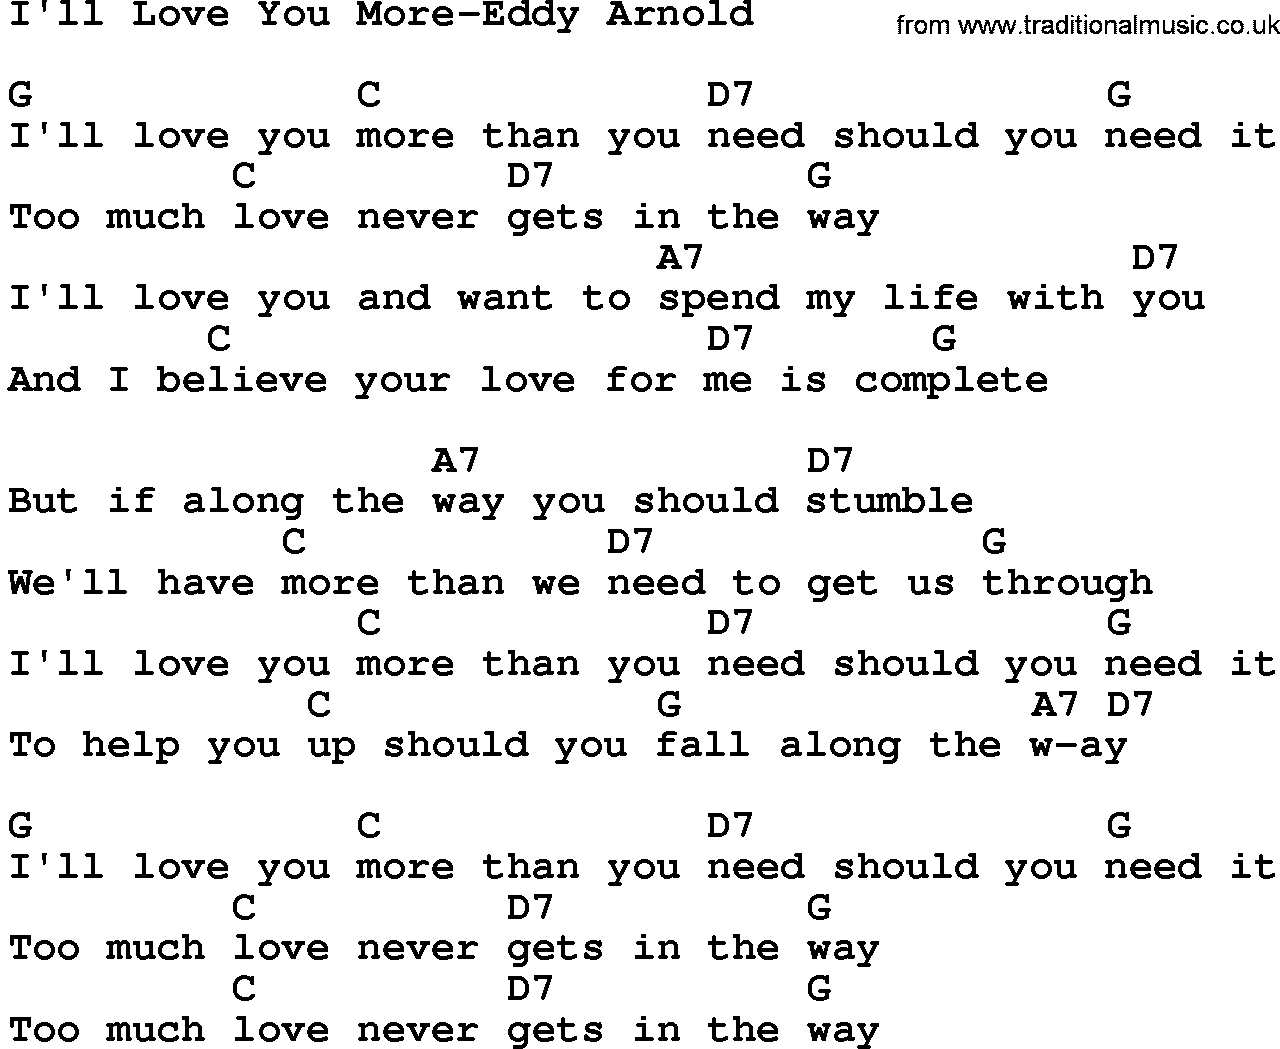 Country Music:I'll Love You More-Eddy Arnold Lyrics and Chords